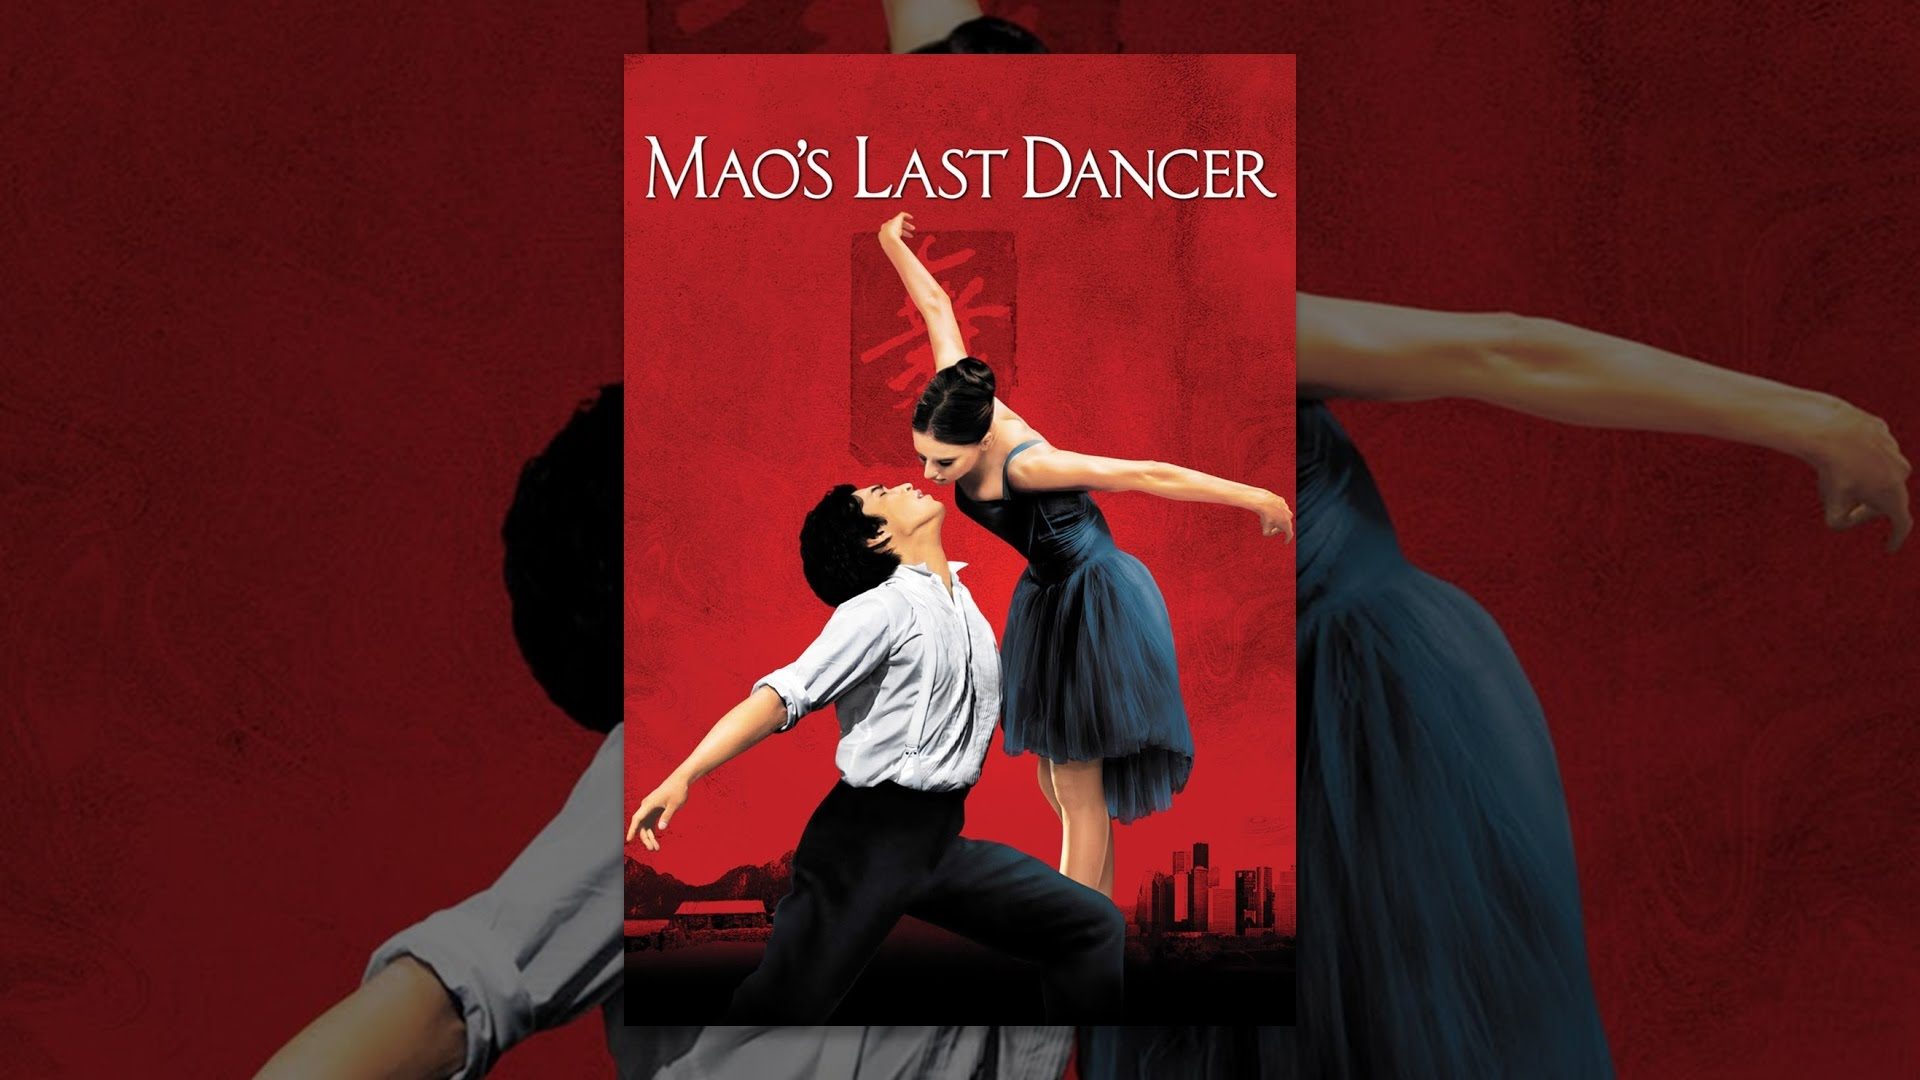 maos last dance The paperback of the mao's last dancer (movie tie-in) by li cunxin at barnes & noble free shipping on $25 or more maos last dancer young readers edition.